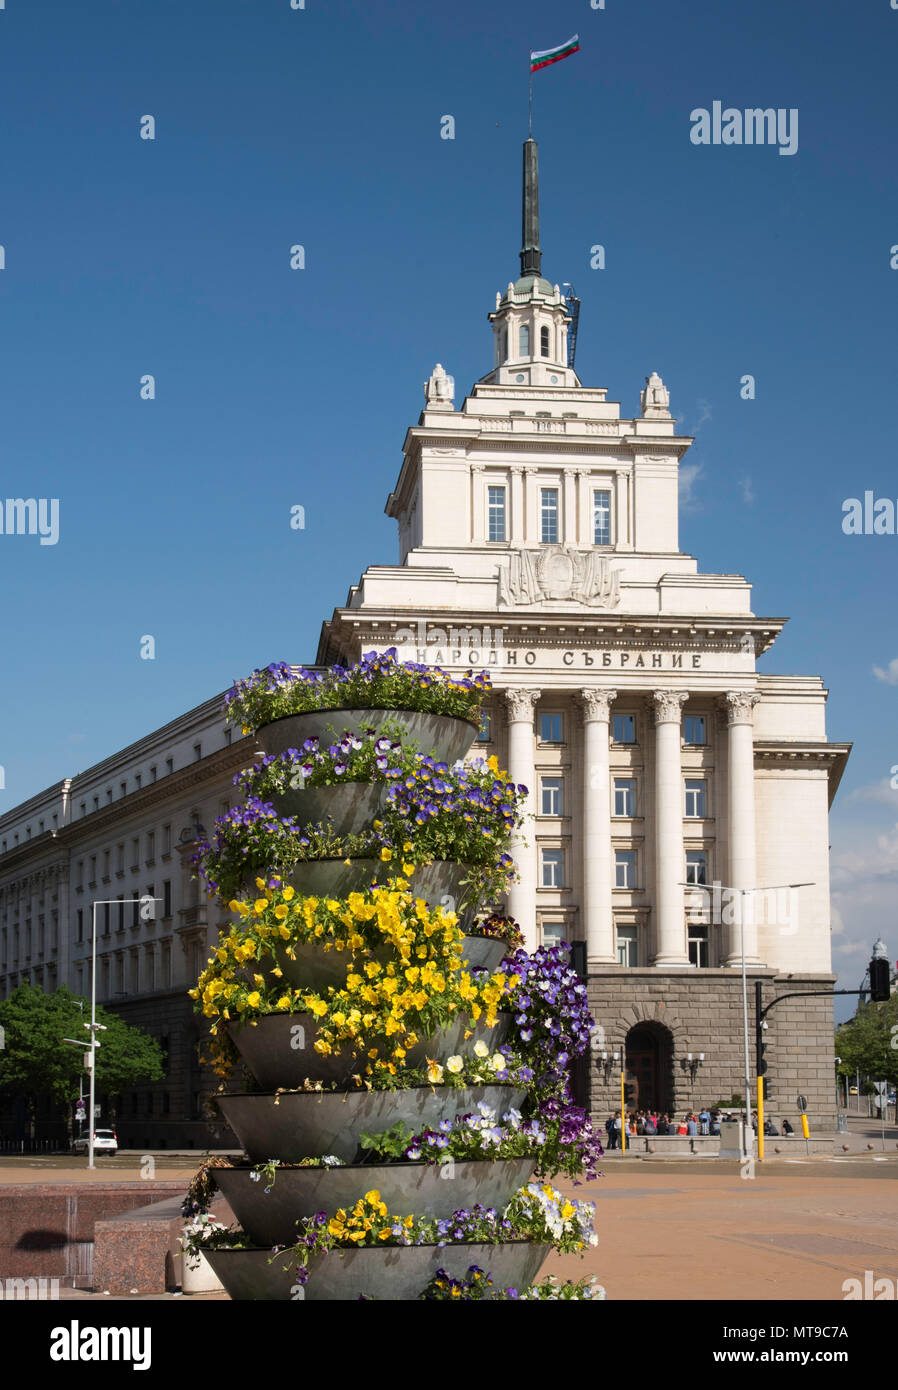 Office house of the National Assembly Building in Sofia, Bulgaria - Stock Image